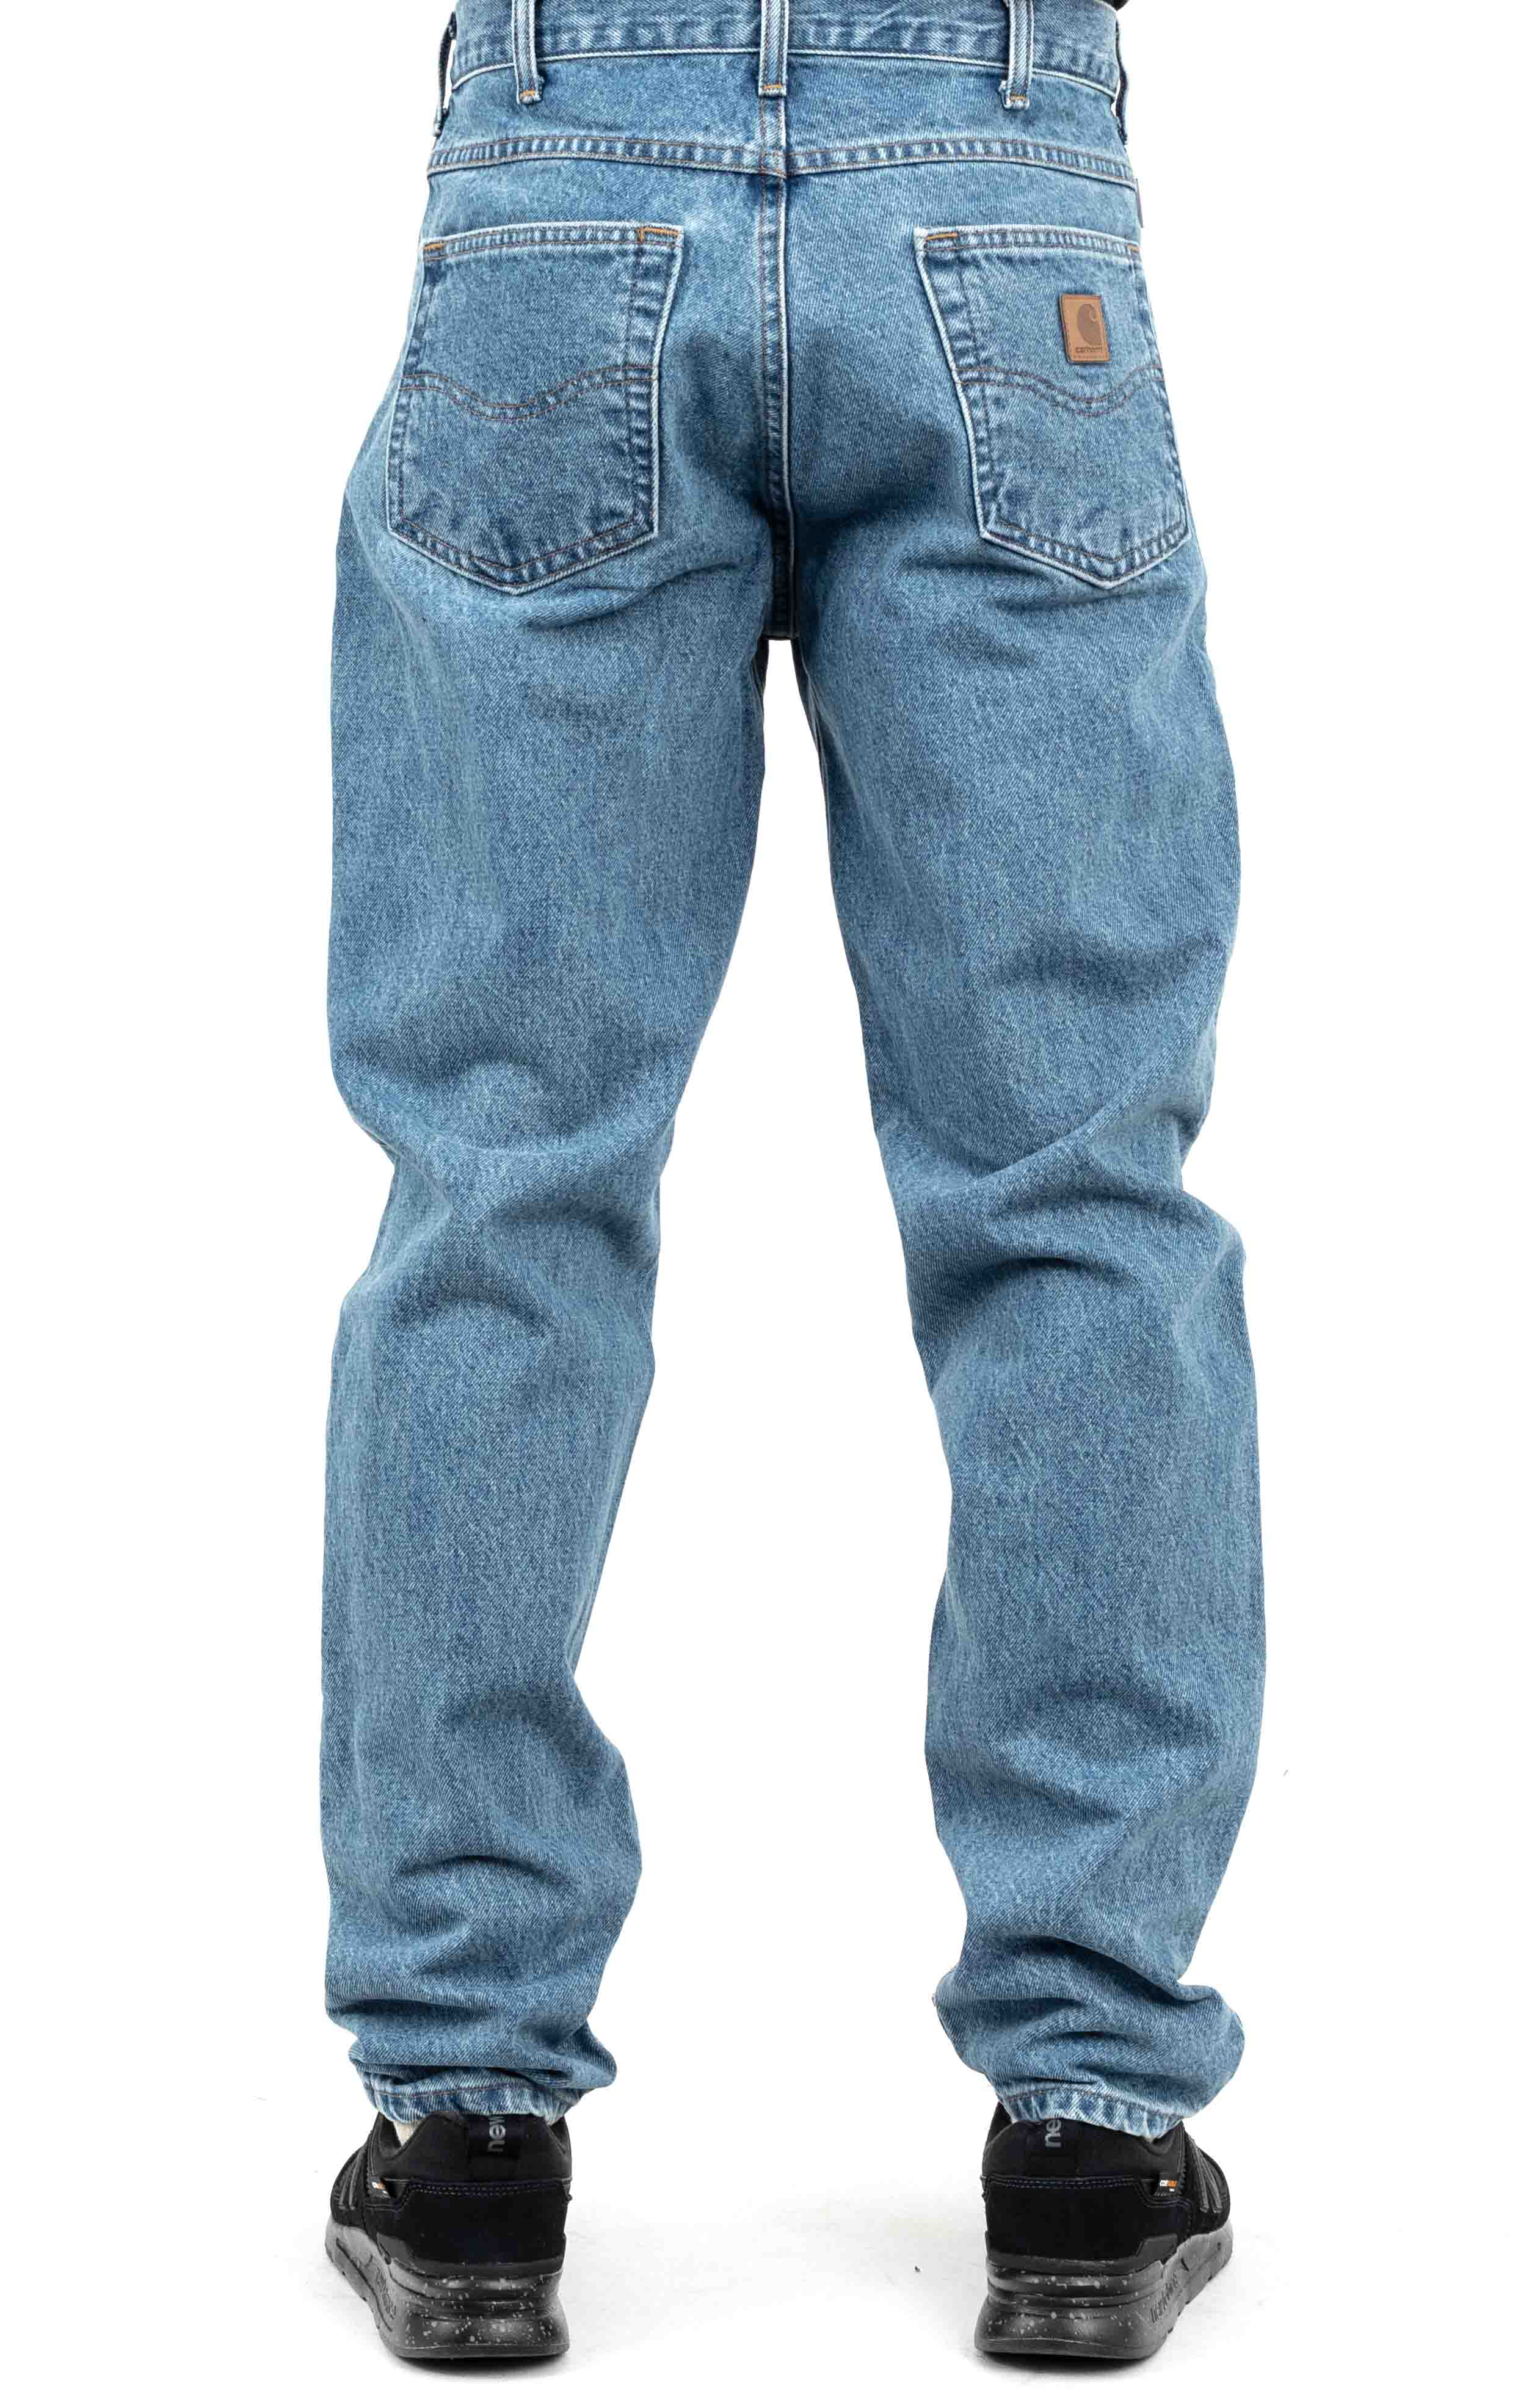 (B17) Relaxed Fit Tapered Leg Jeans - Stonewash 3